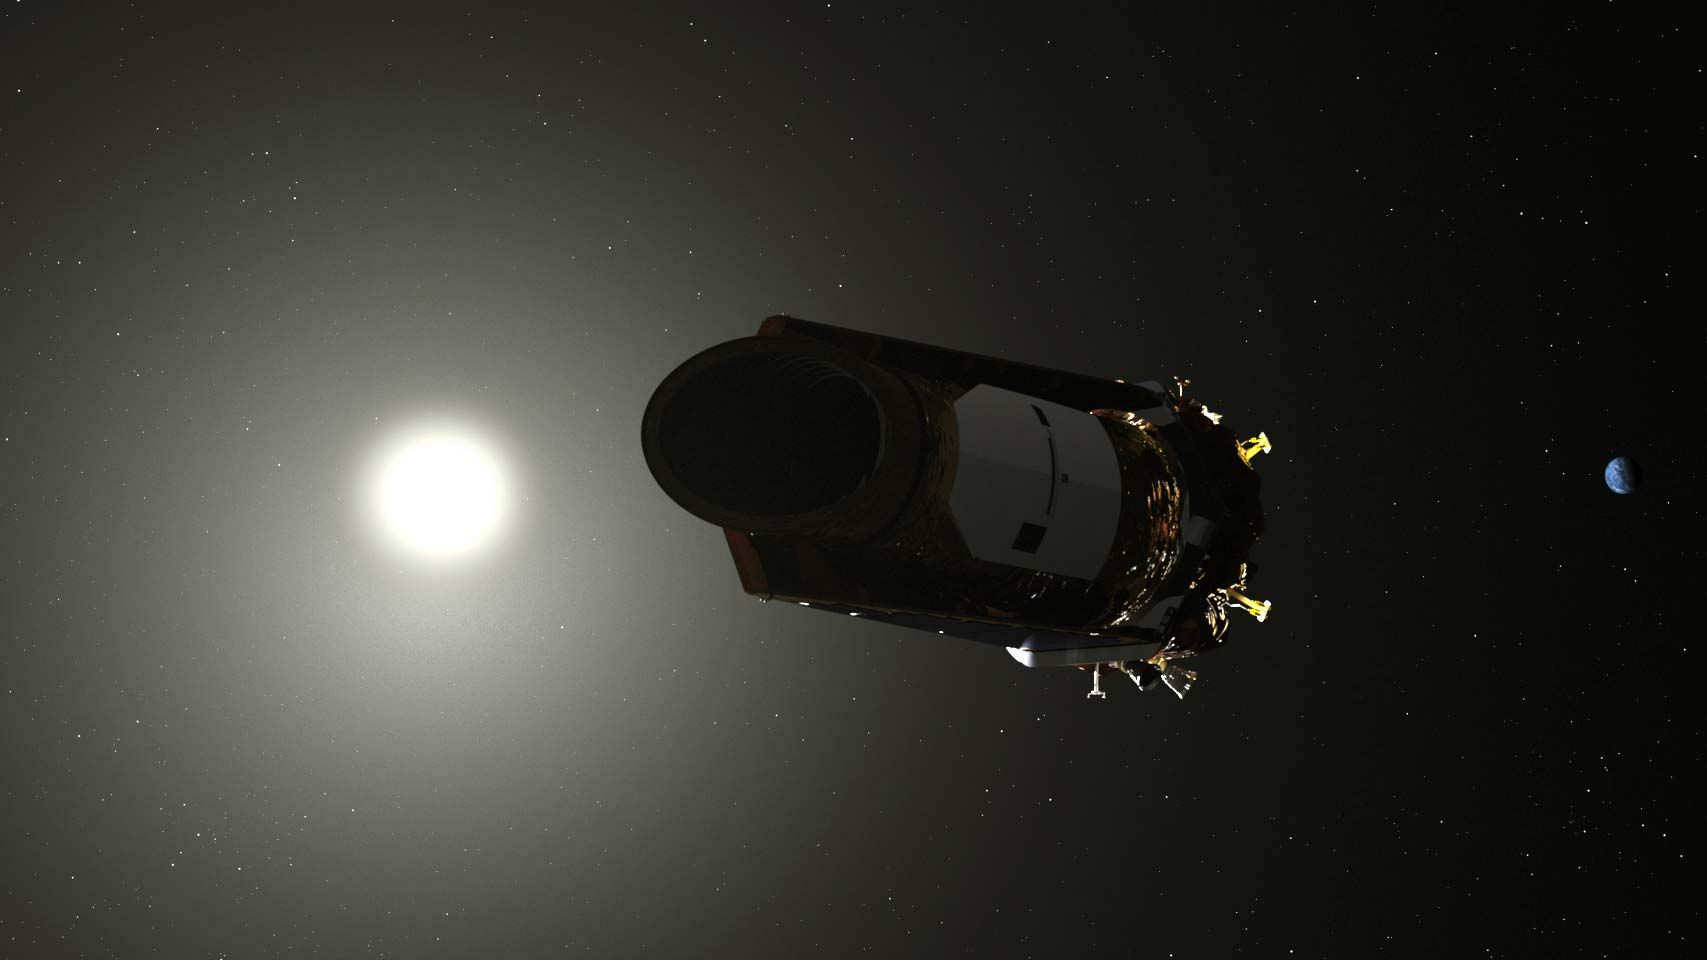 An artist's illustration of the Kepler telescope.